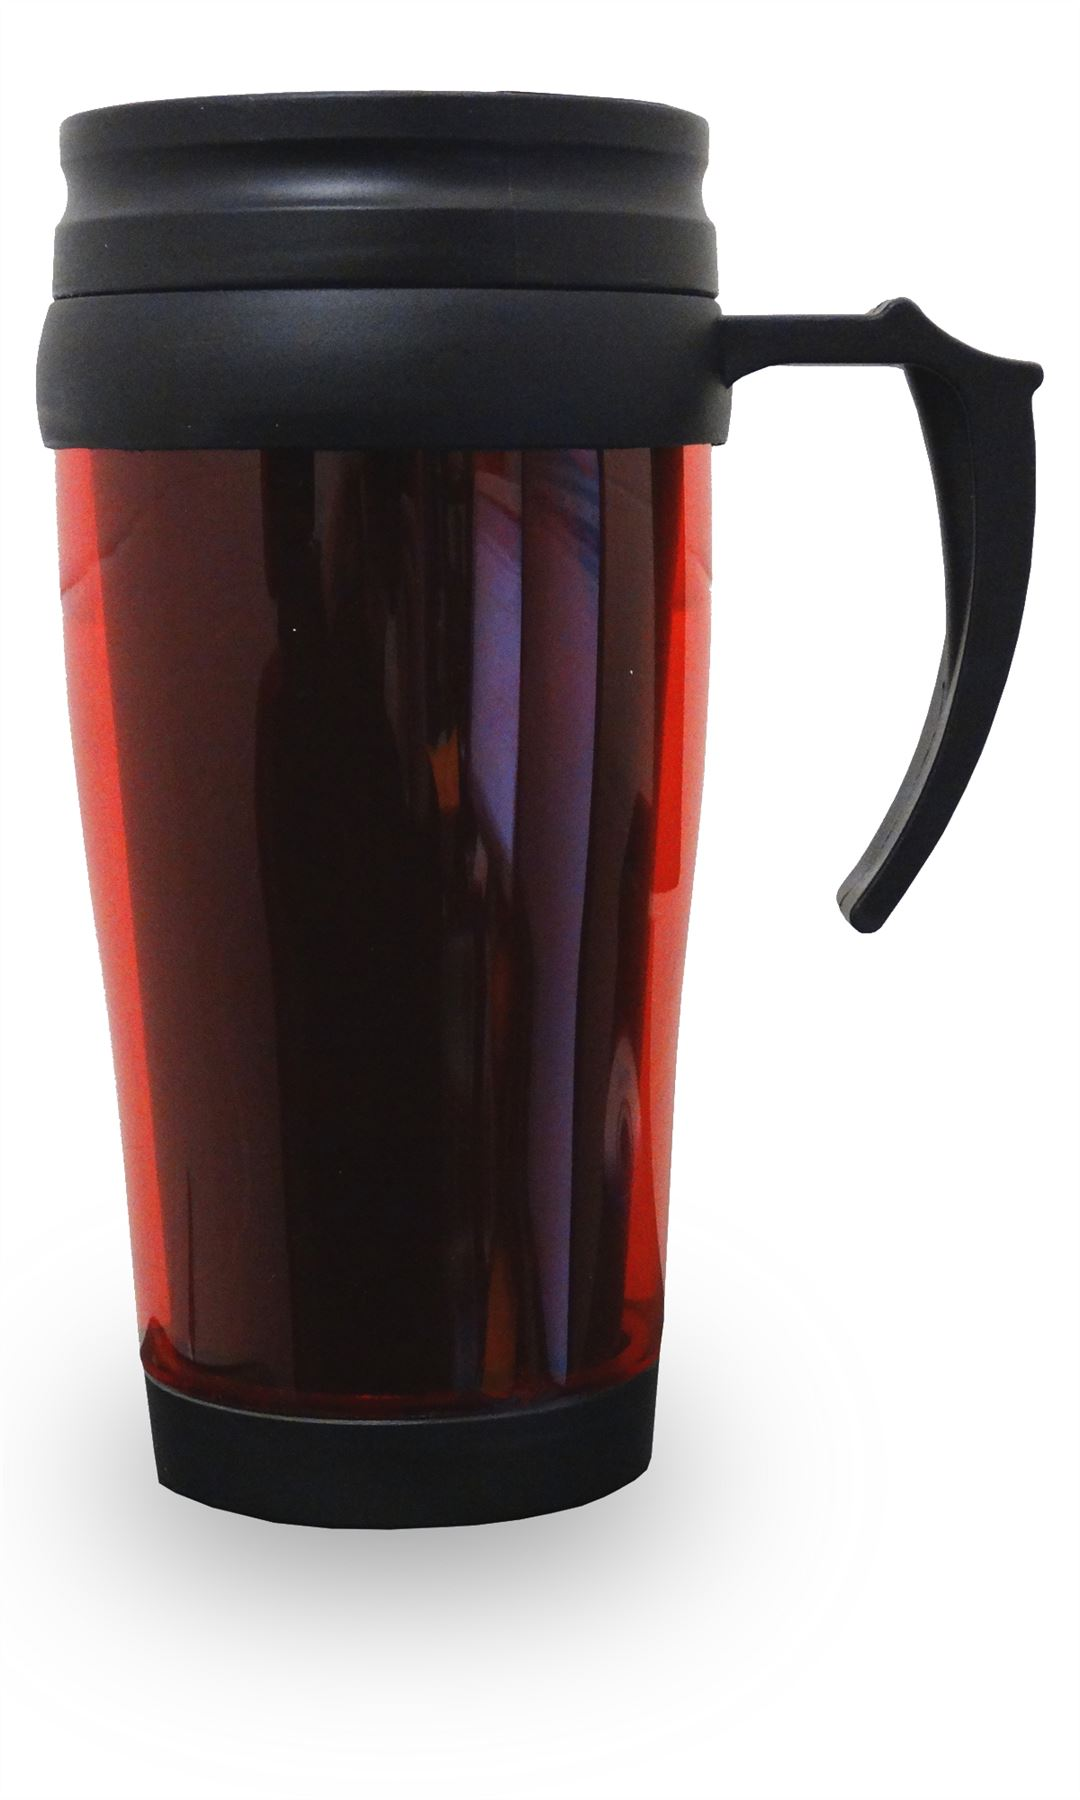 Cup With Lid : Insulated thermal travel coffee mug flask cup removable